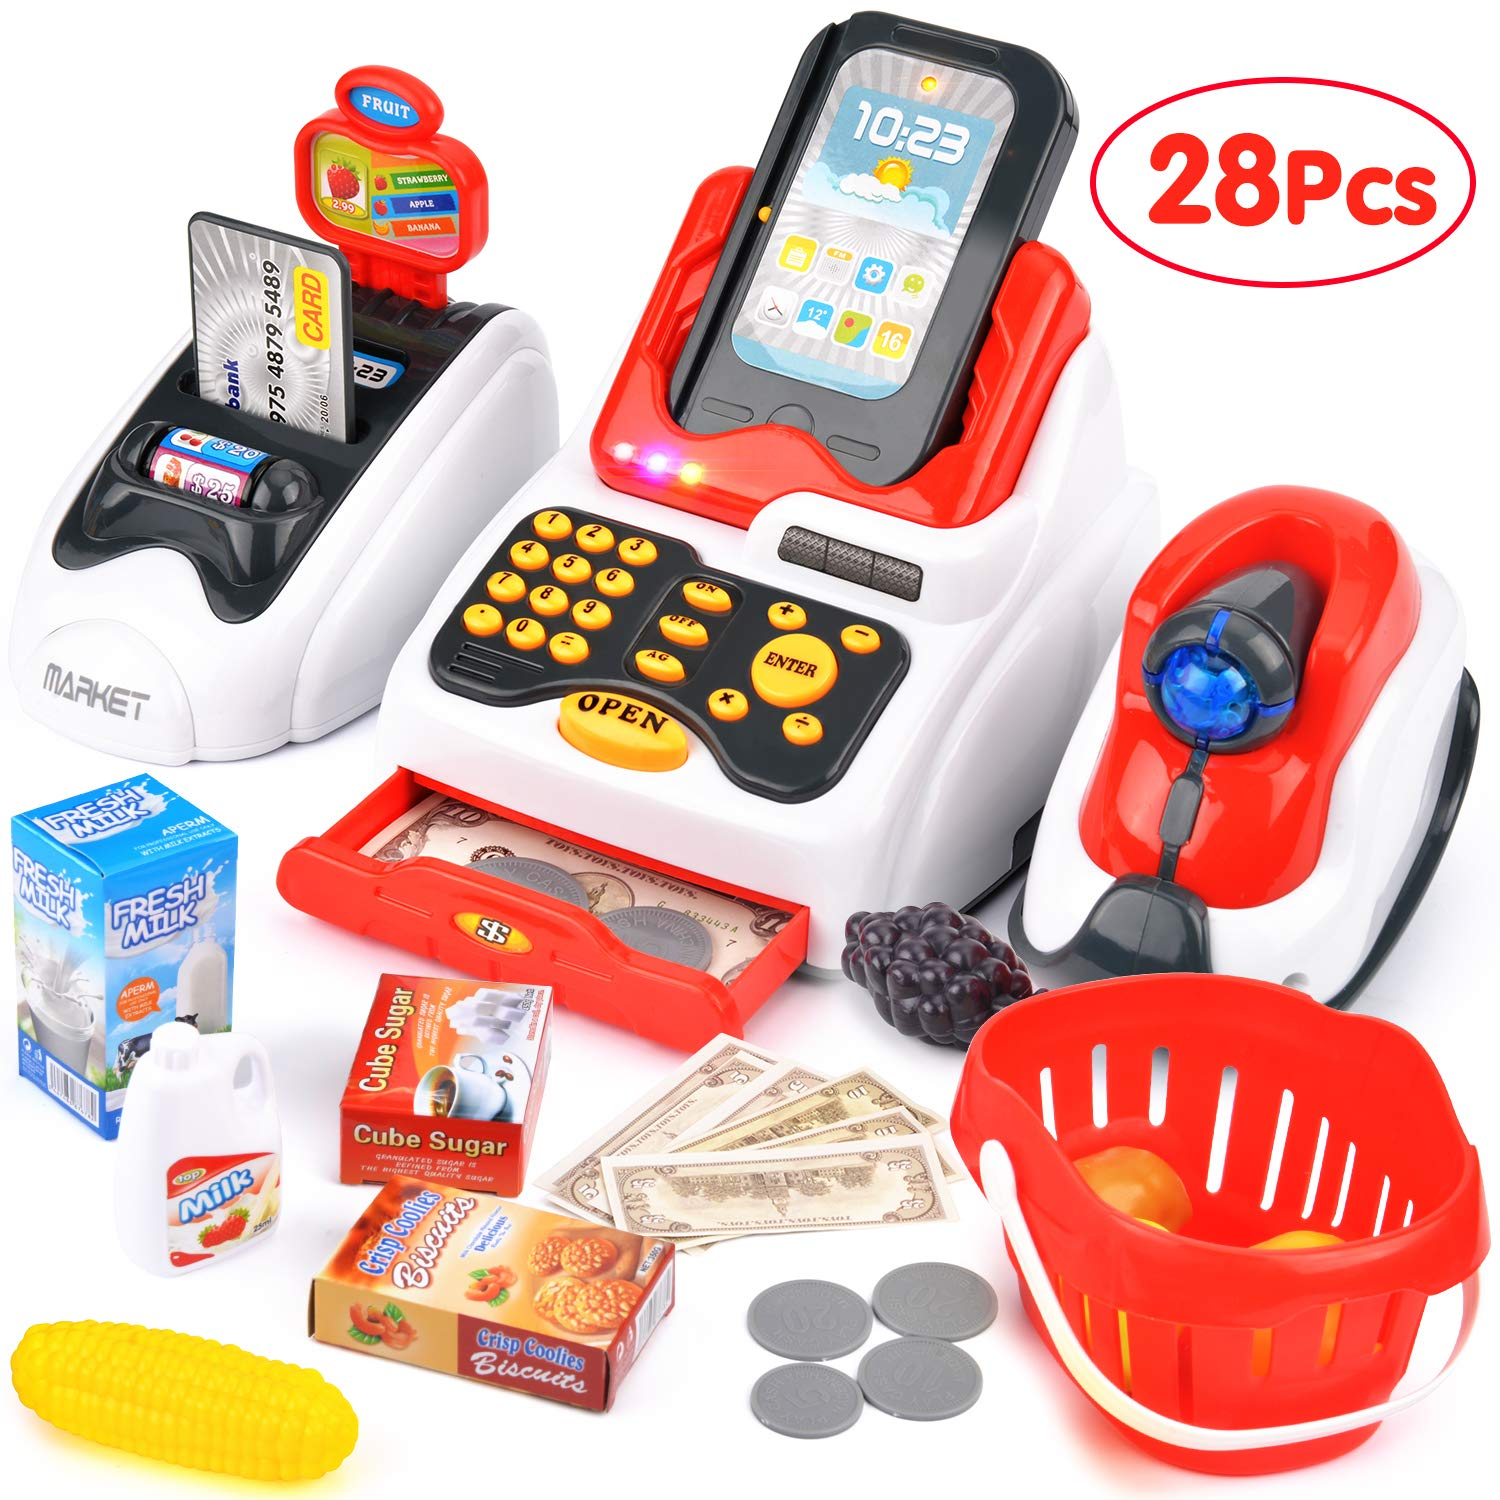 Victostar Toy Cash Register with Checkout Scanner,Fruit Card Reader, Credit Card Machine, Play Money and Food Shopping Play Set for Kids (Red)